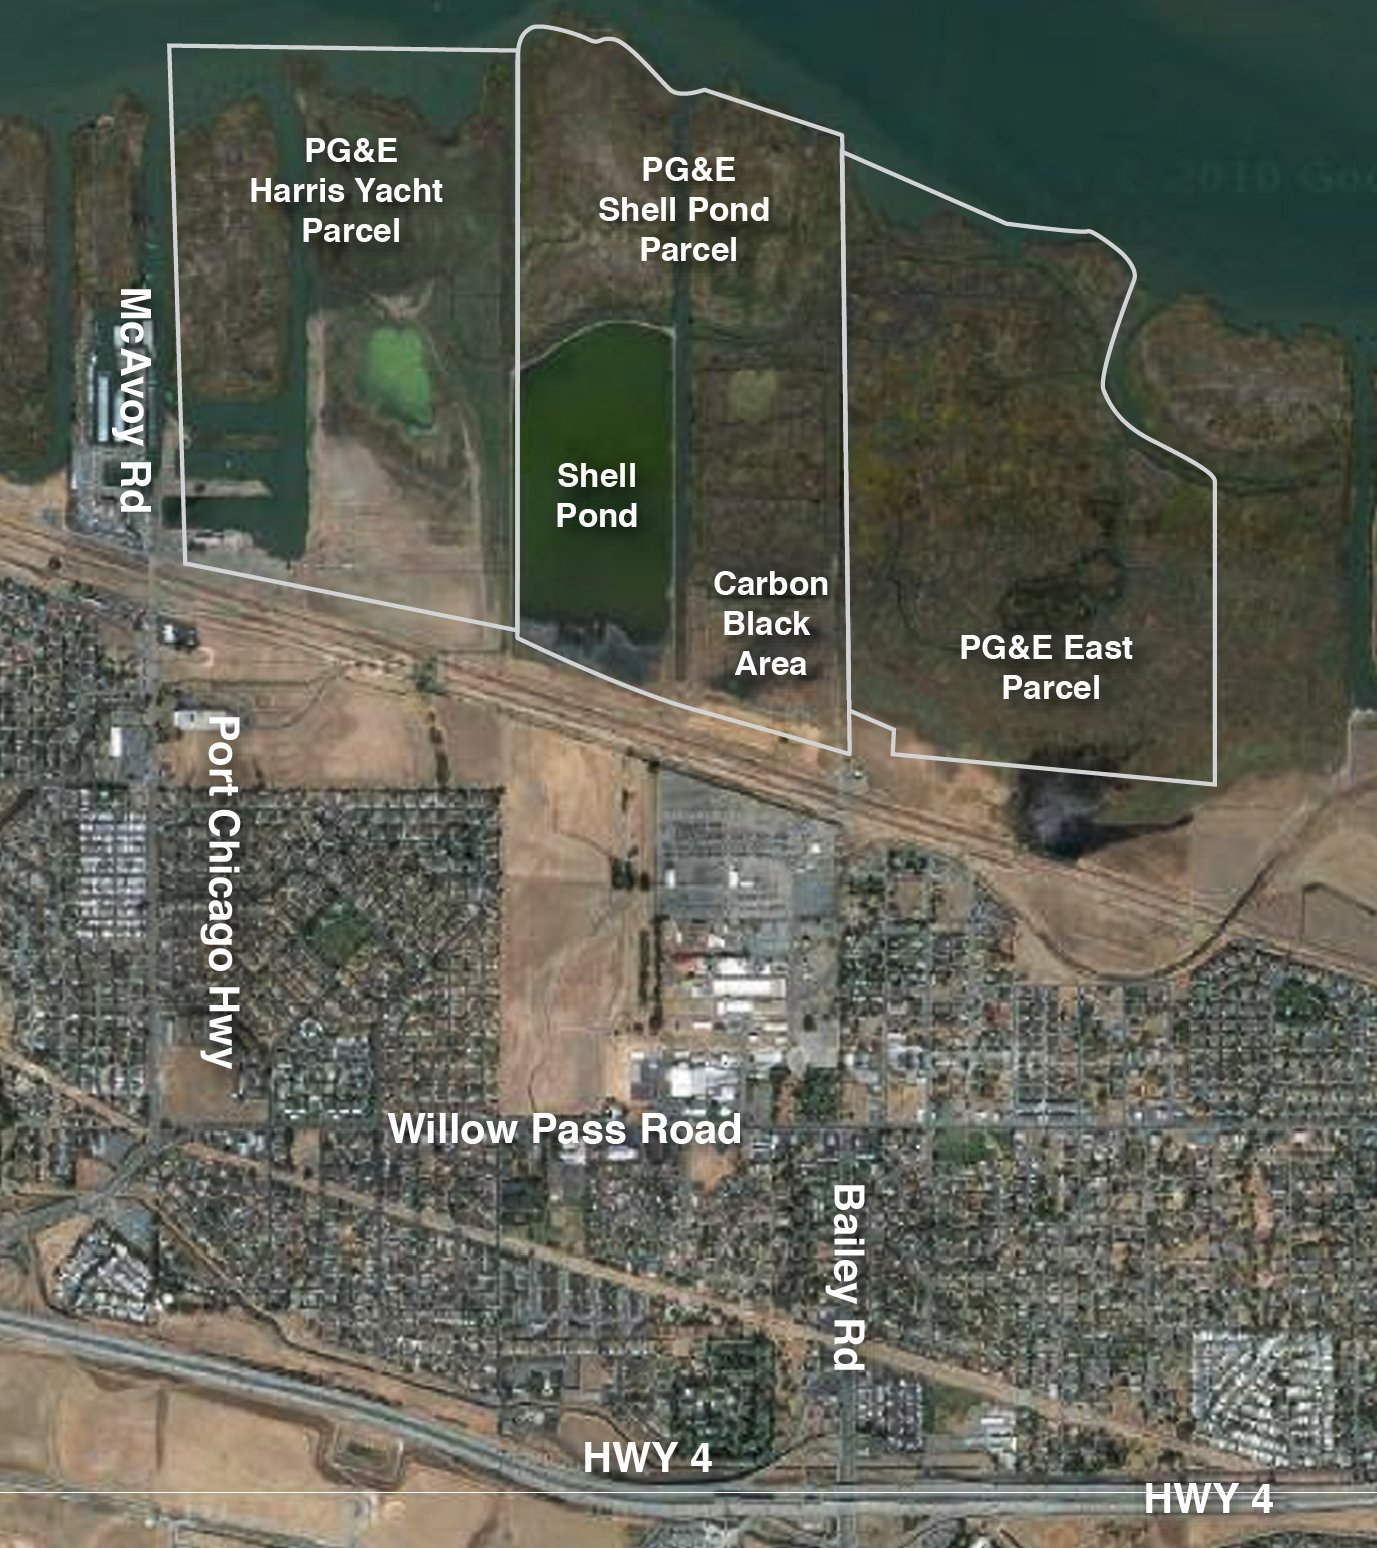 Shell-Pond site map